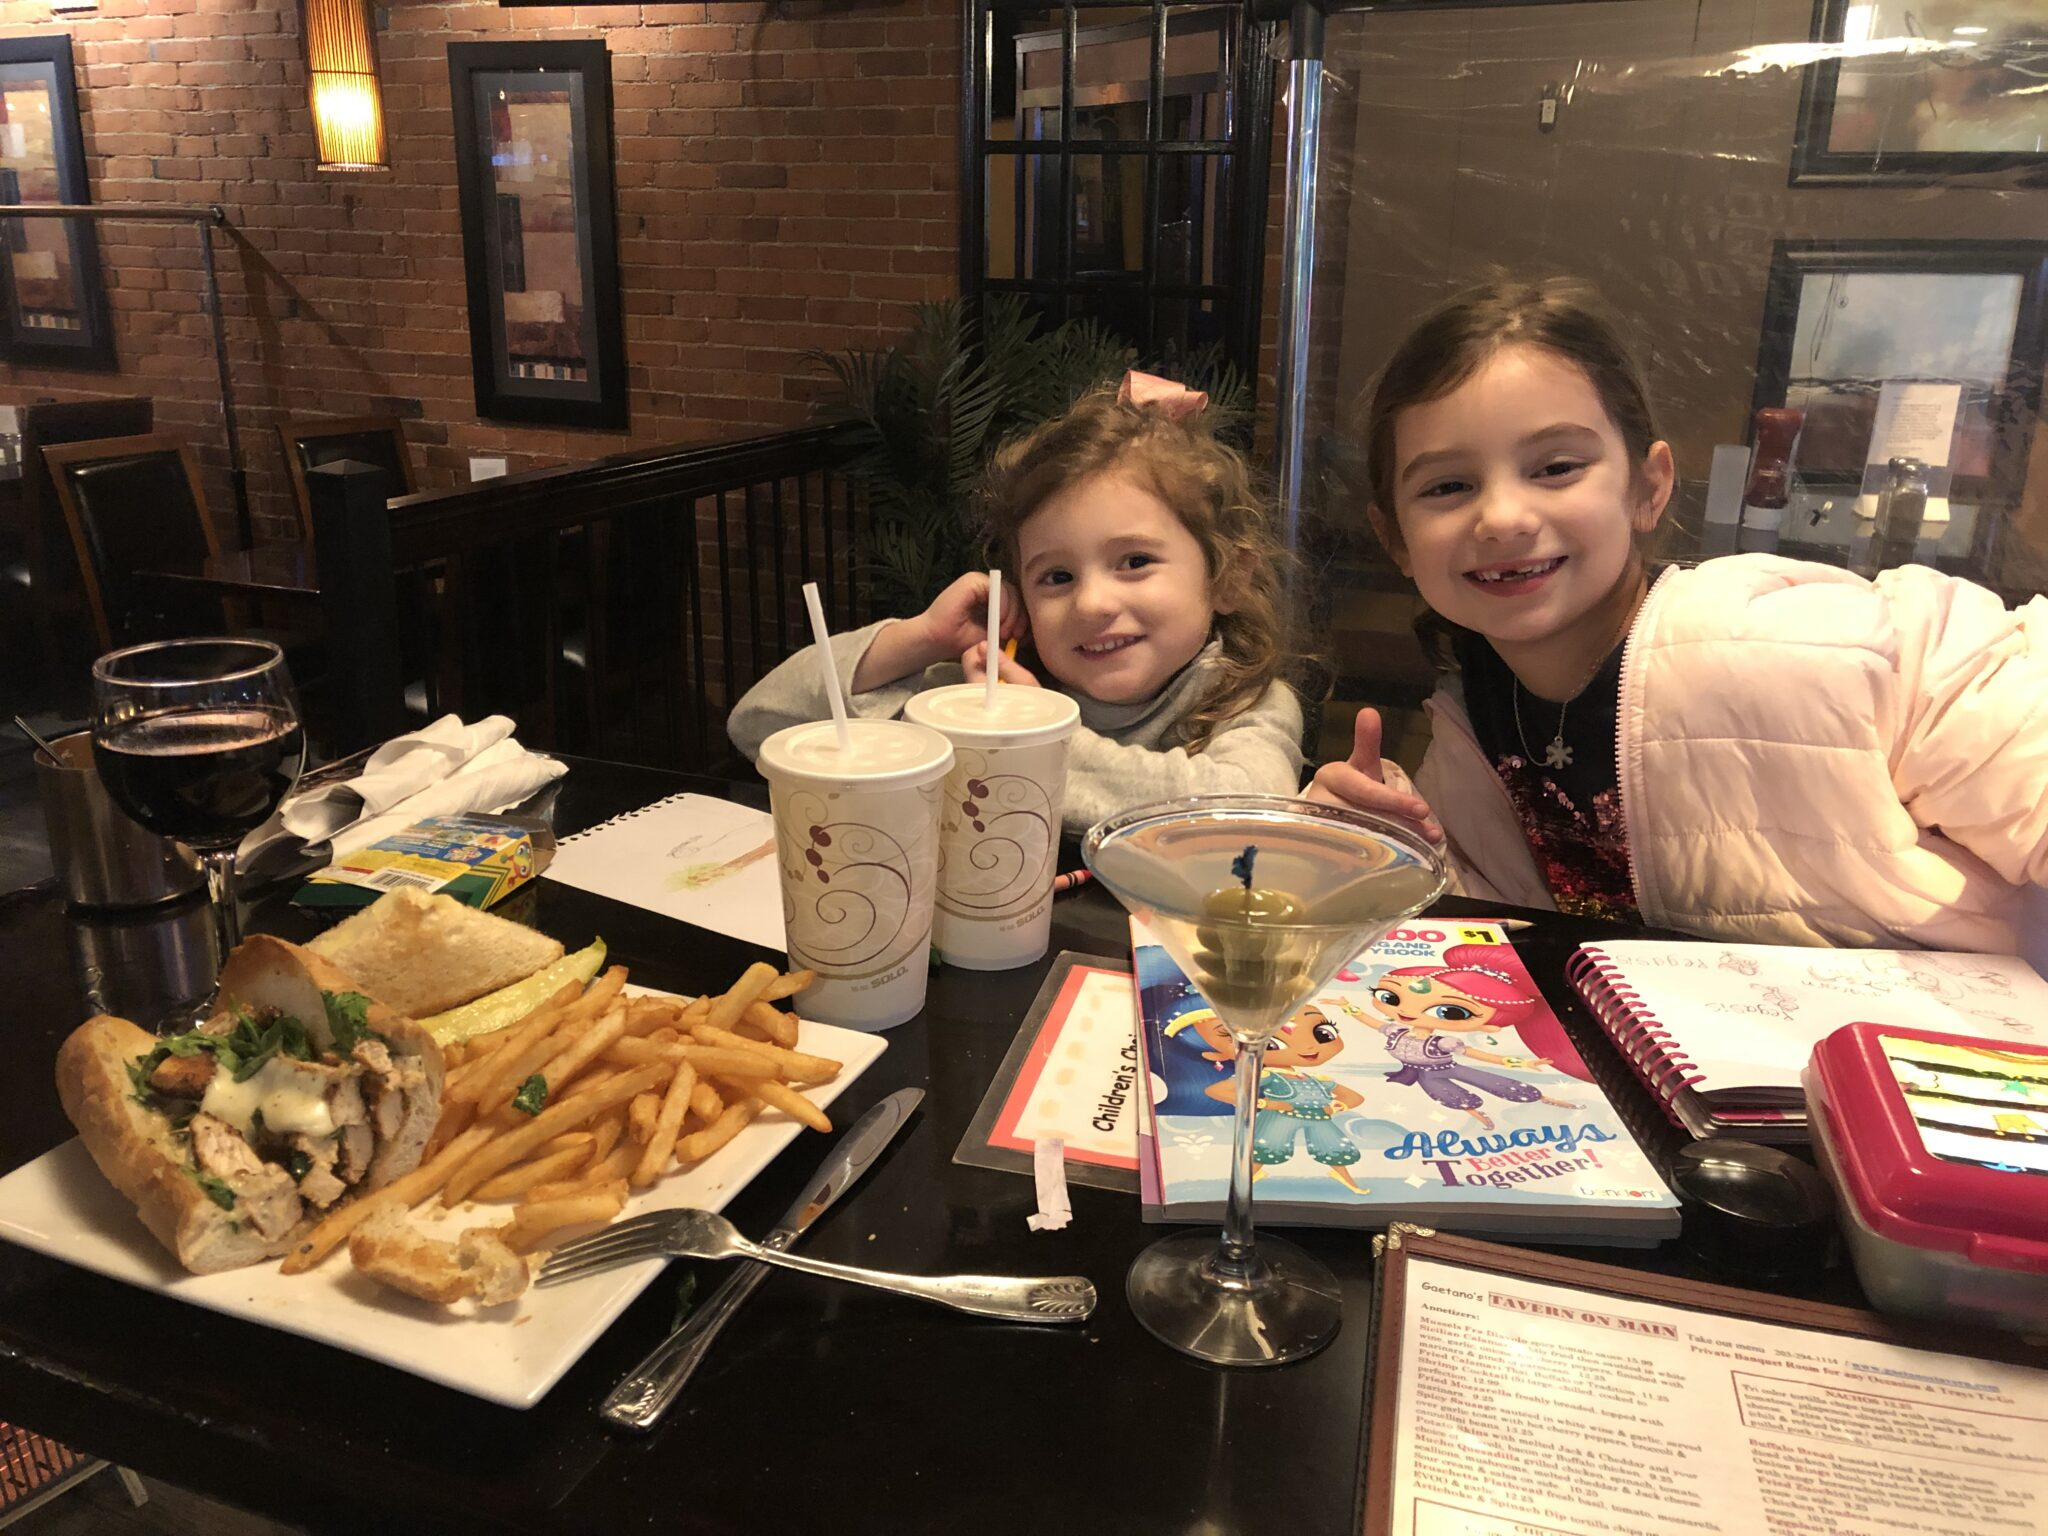 little girls at Gaetanos Tavern